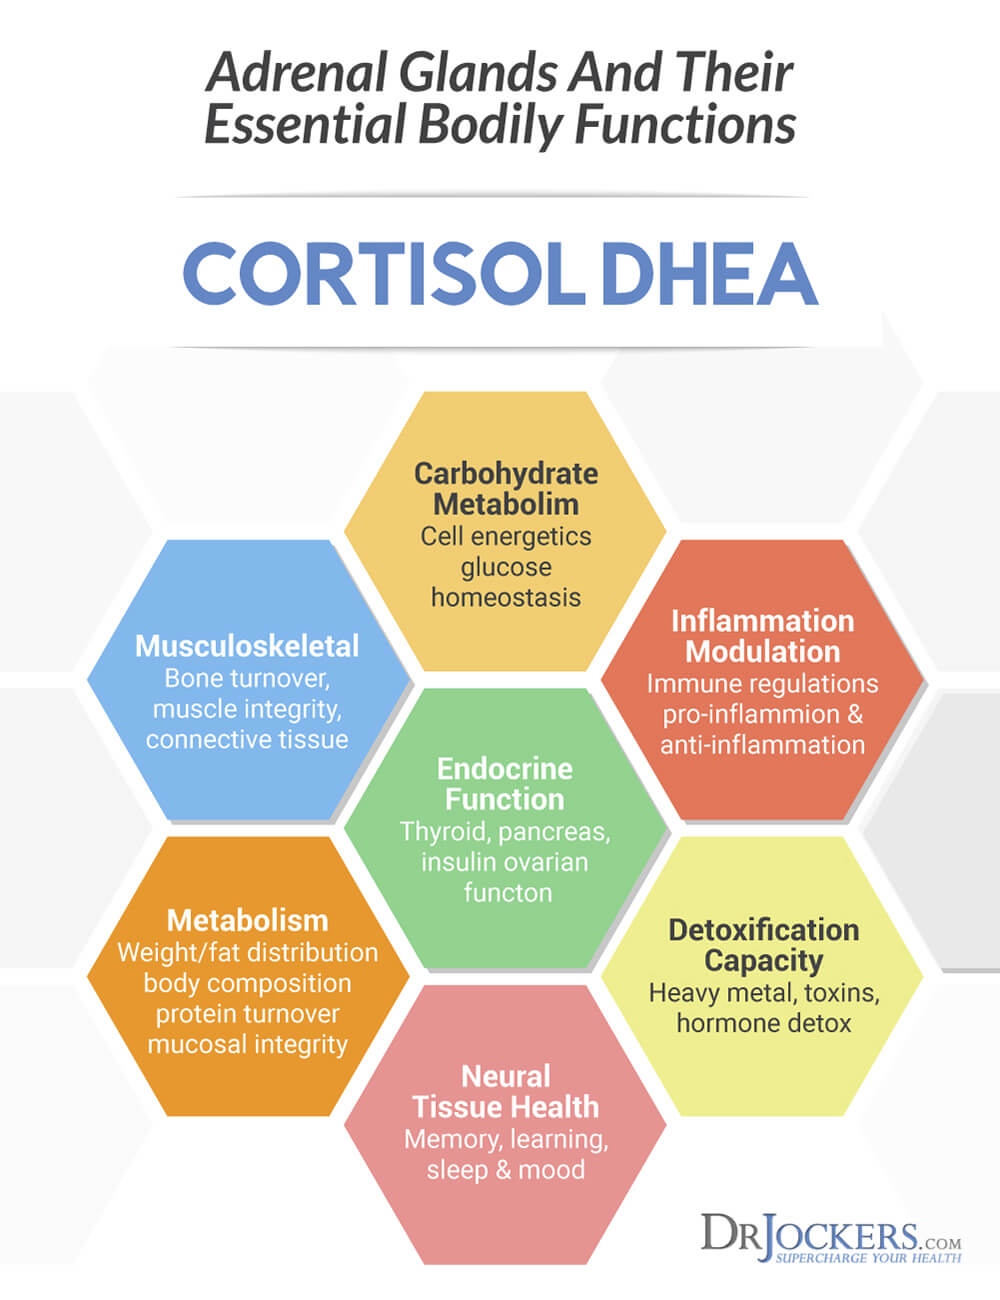 Low Calorie Dieting Increases Cortisol